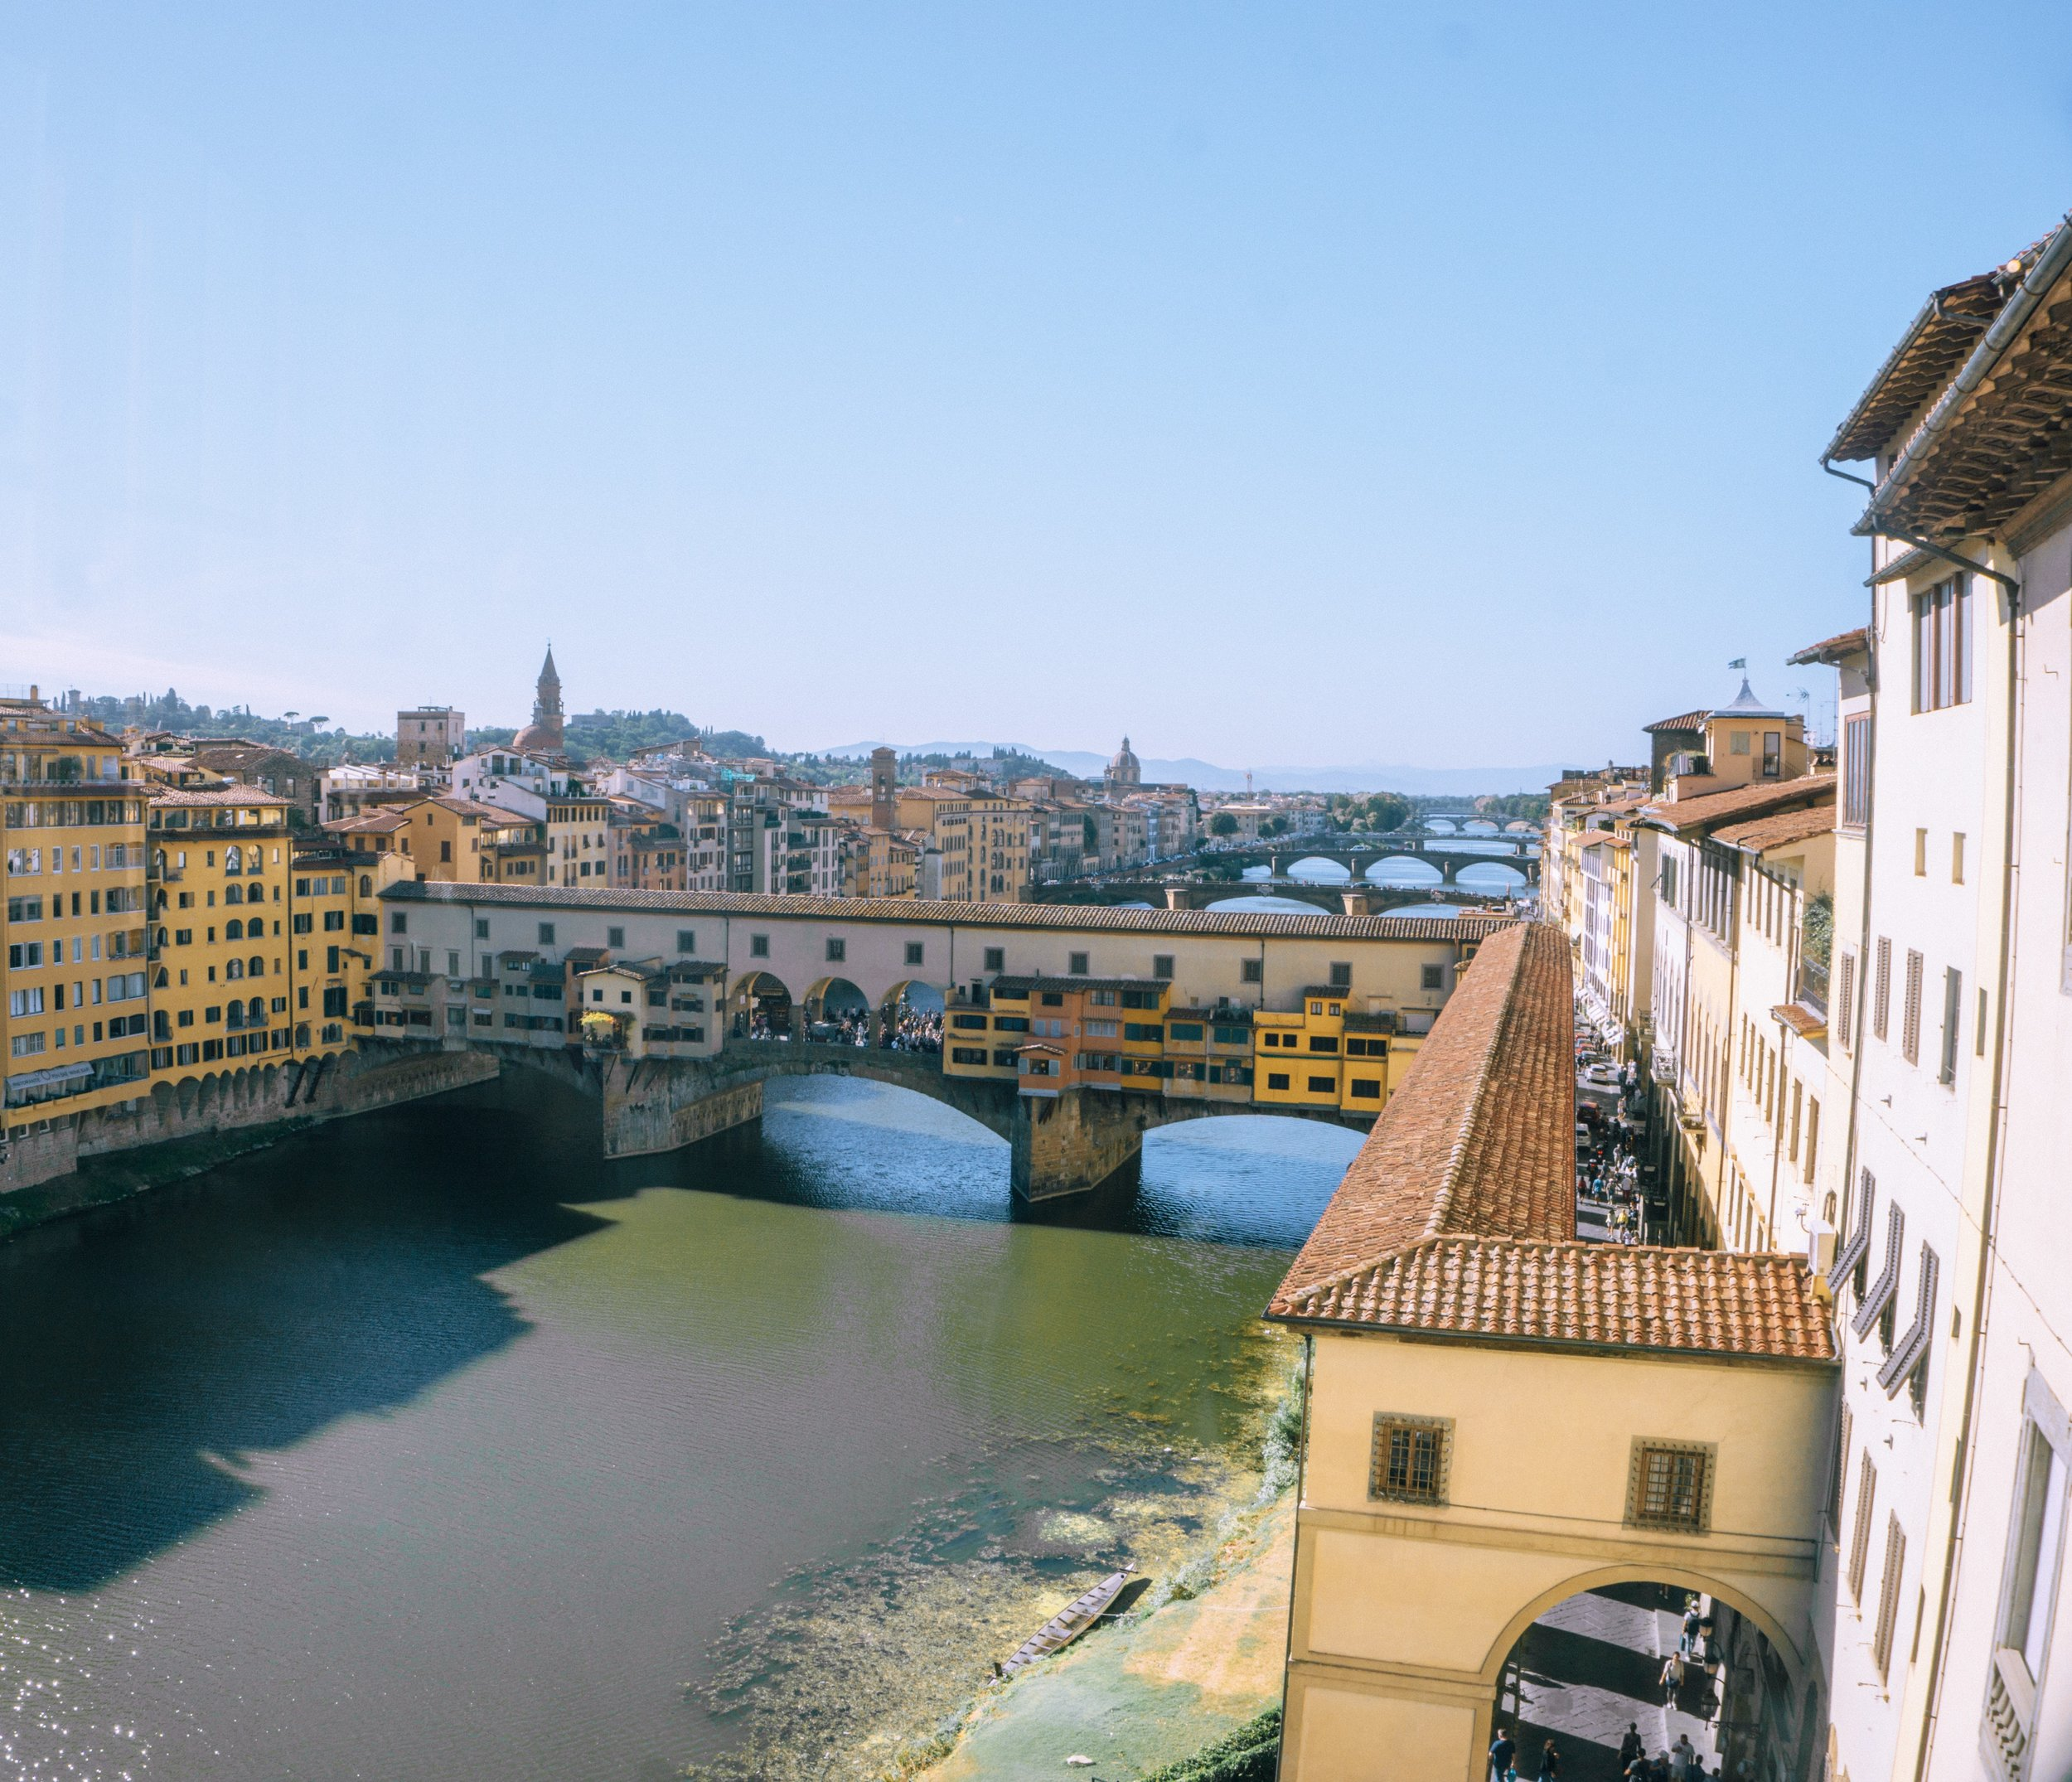 The canals are actually out of a fairytale… and the Ponte Vecchio or (old bridge) is as strikingly beautiful as it is old.